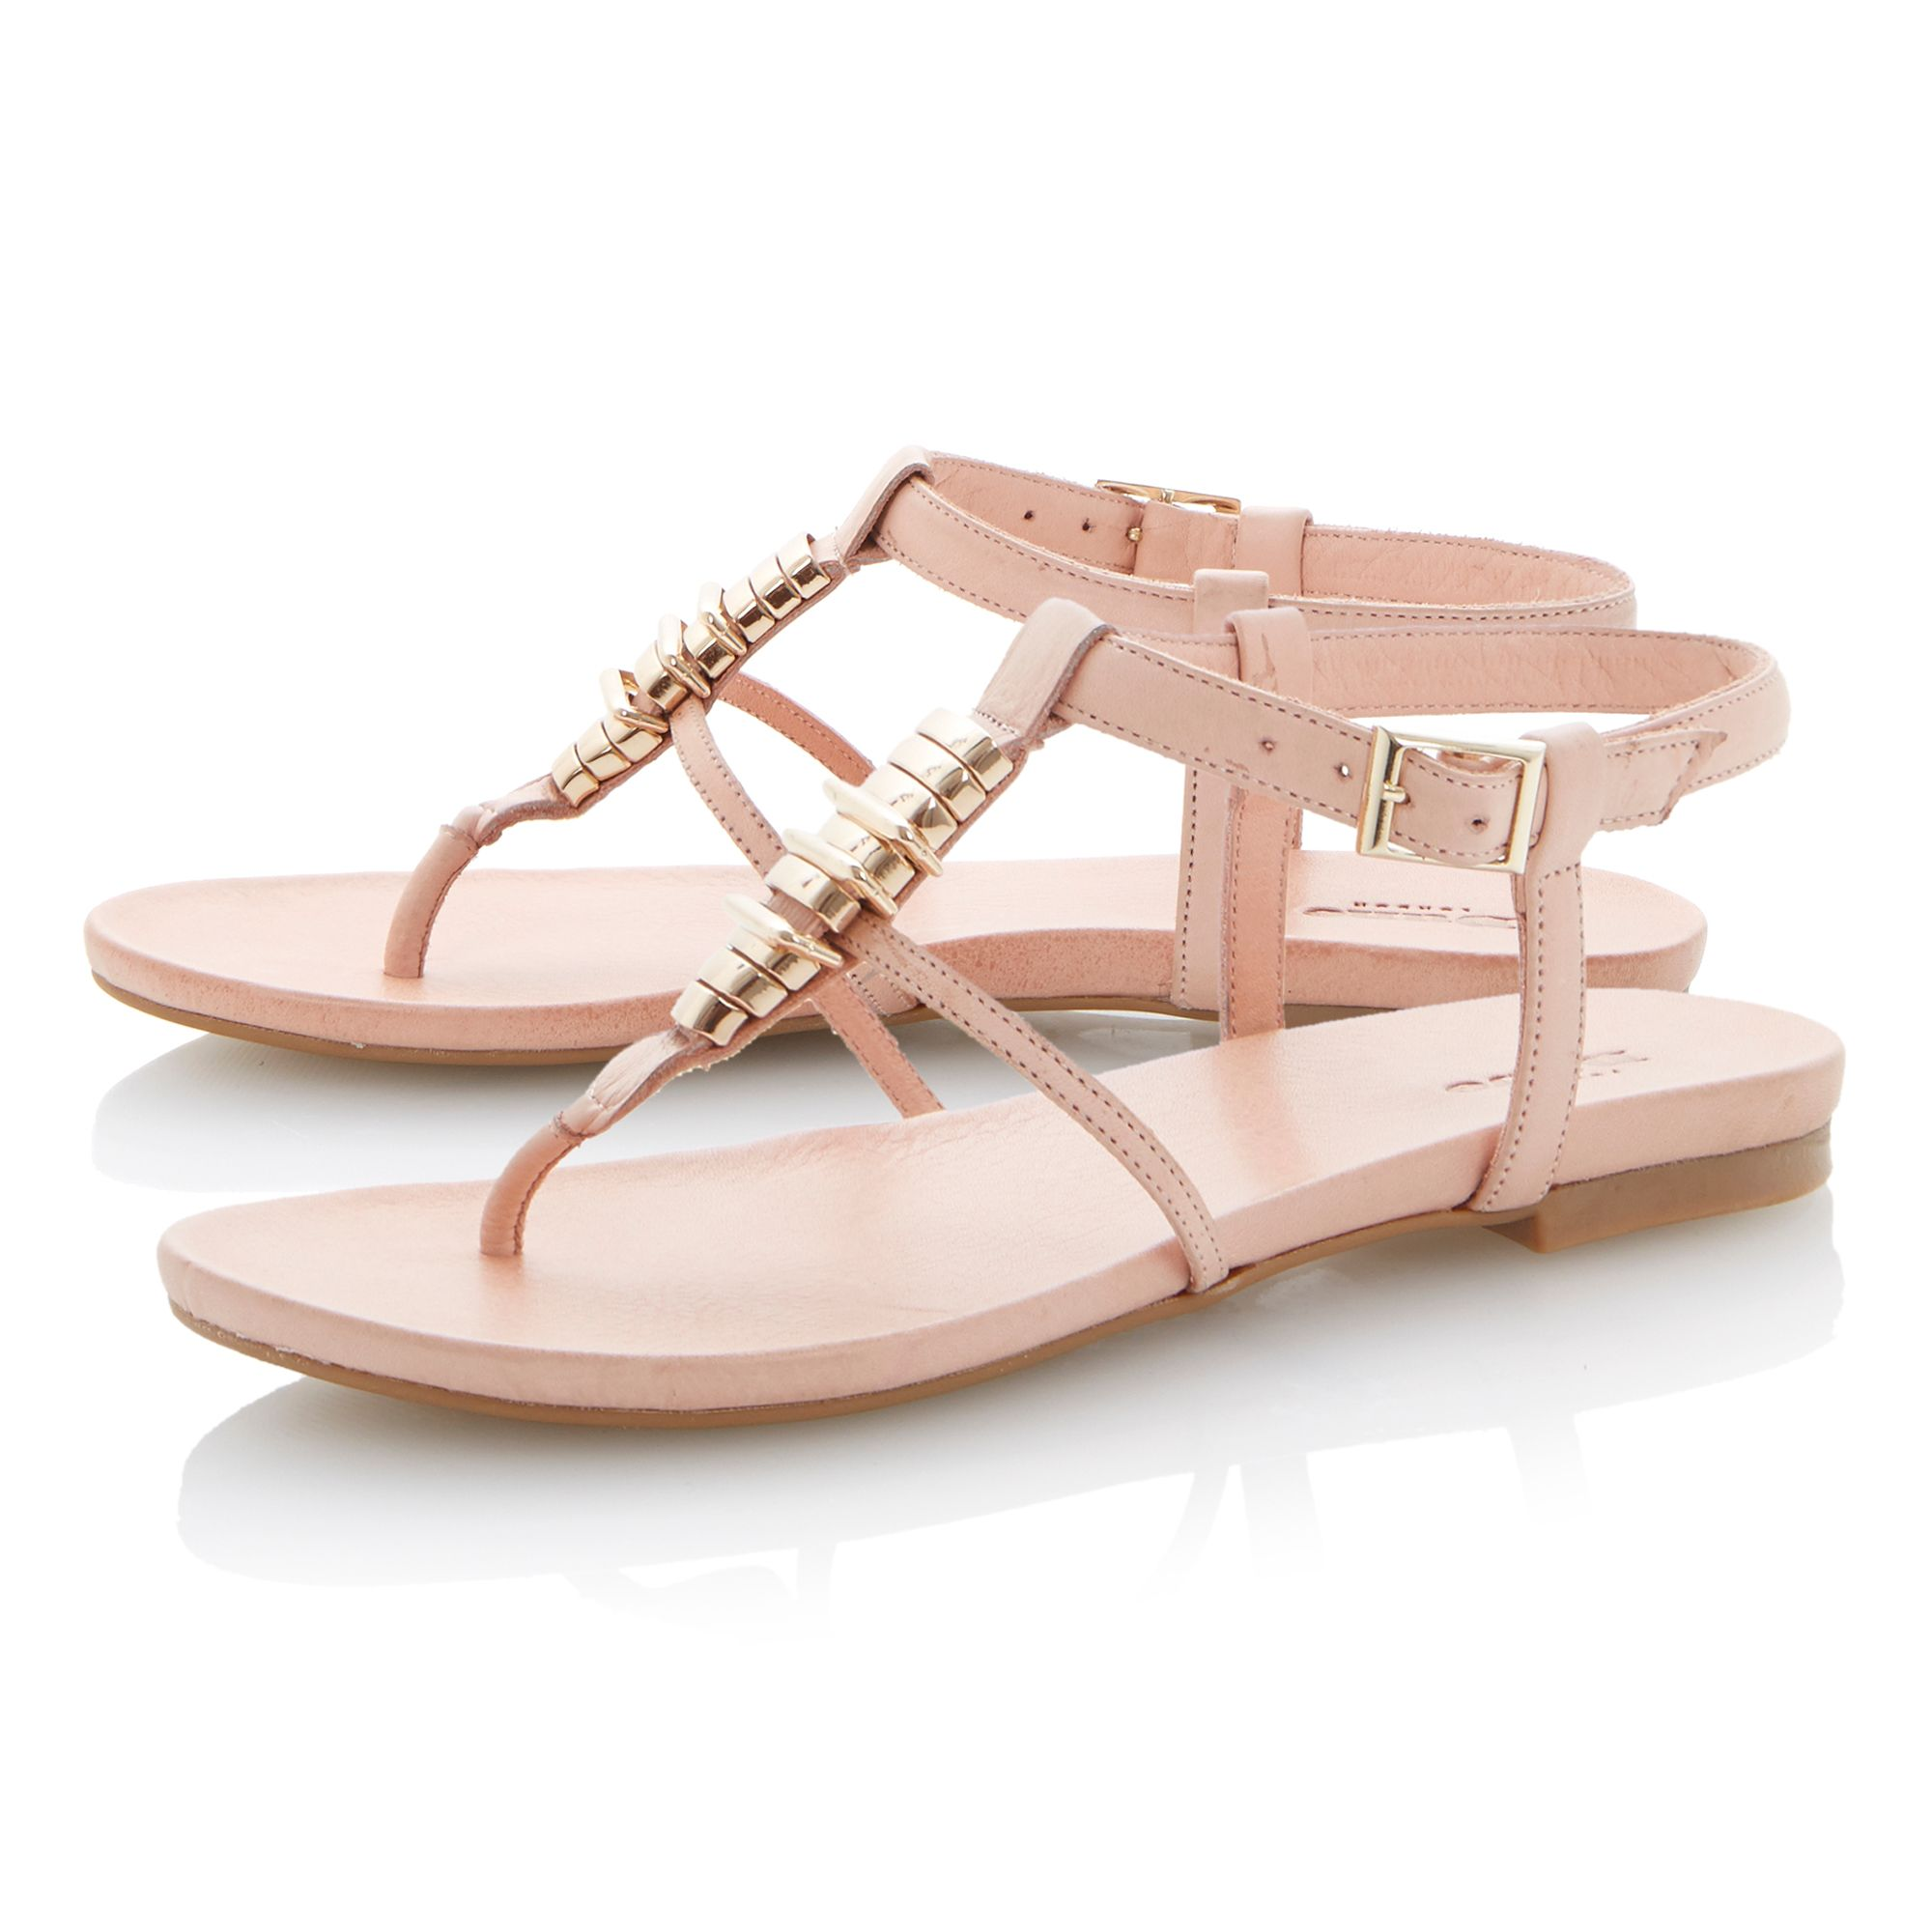 Jax leather flat buckle sandals